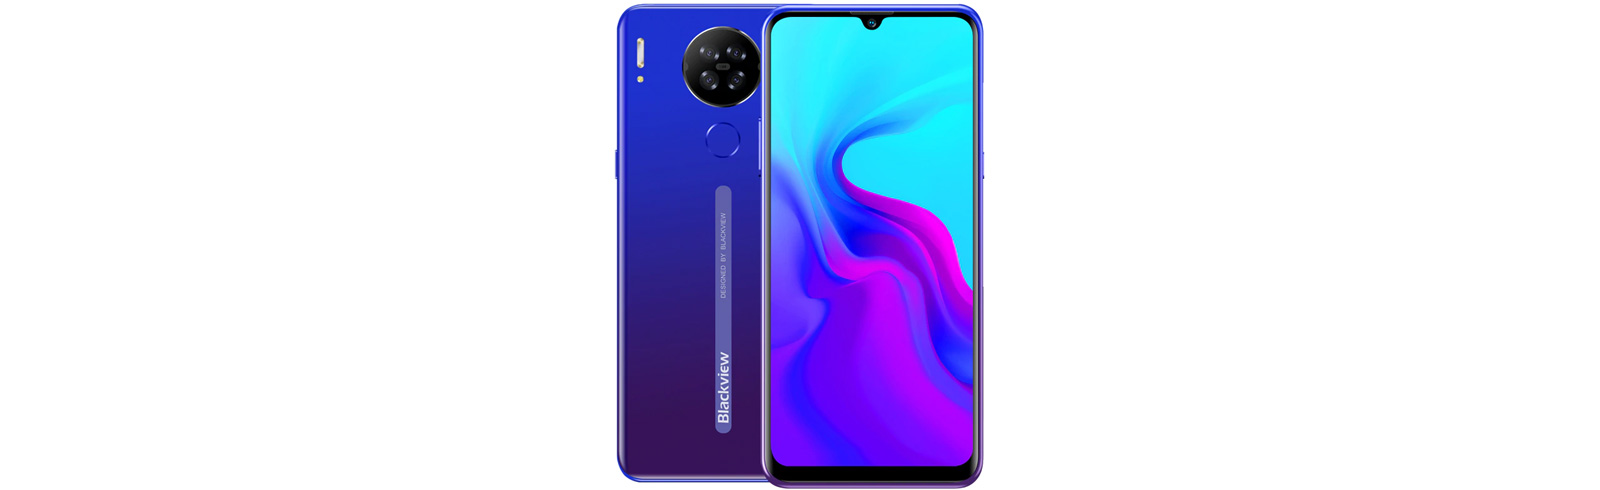 Blackview A80 and Blackview BV6900 are official - specifications and prices